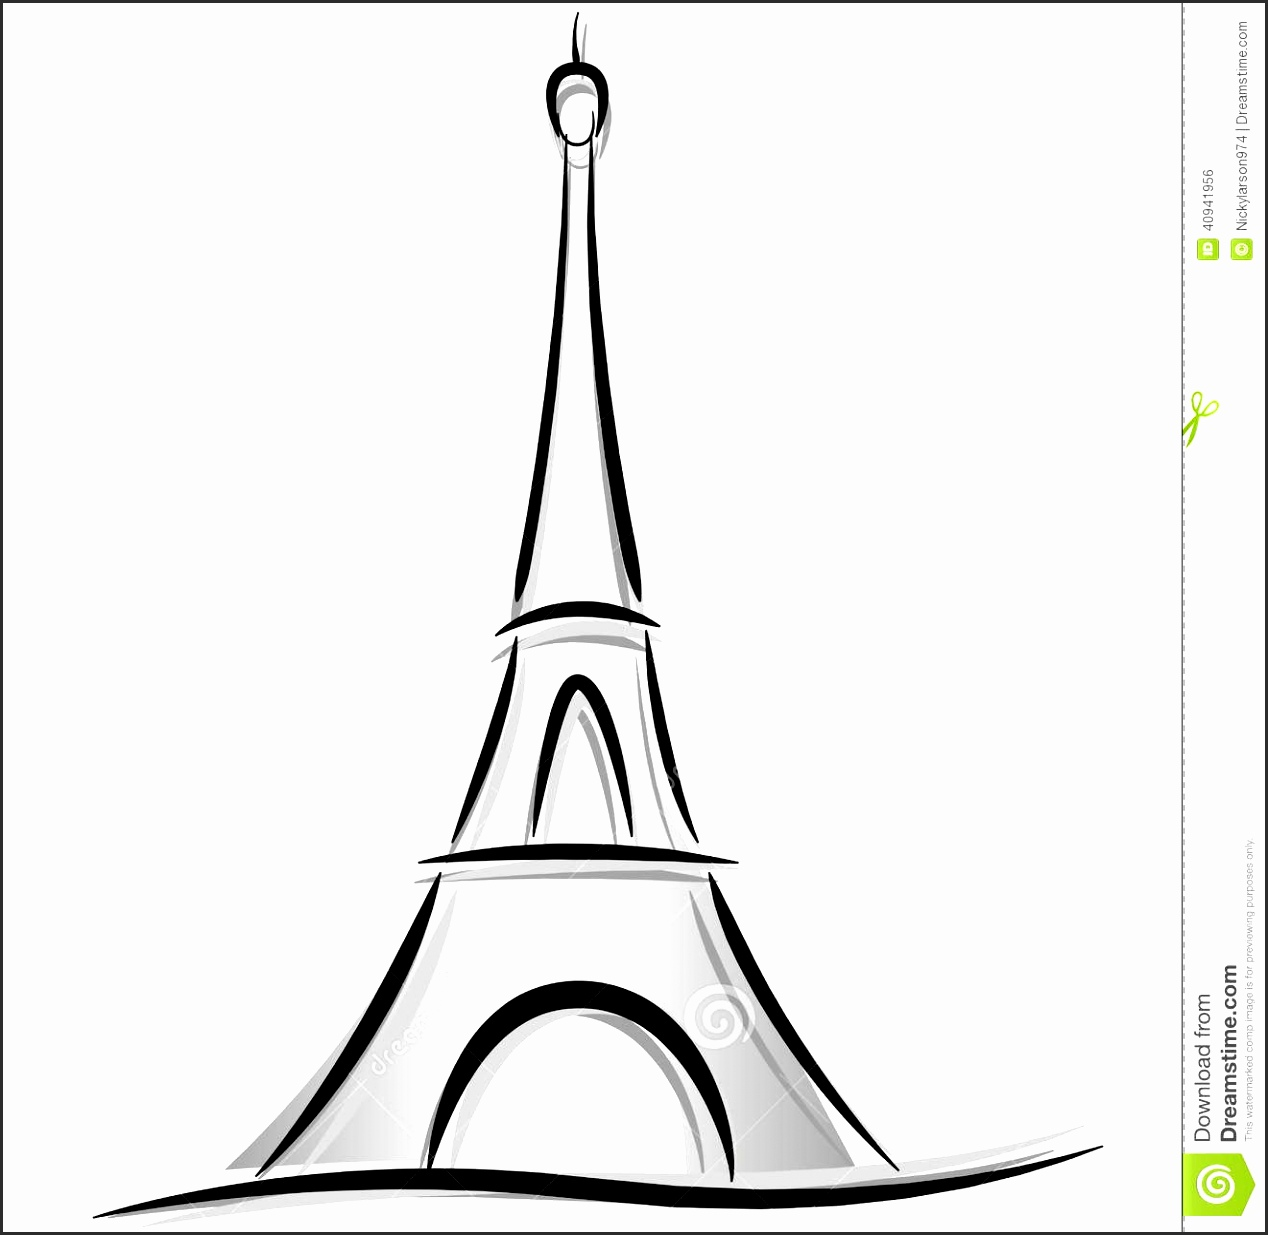 how to draw the eiffel tower easy step by step eiffel tower easy drawing free download on clipartmag step draw the step tower eiffel easy by to how